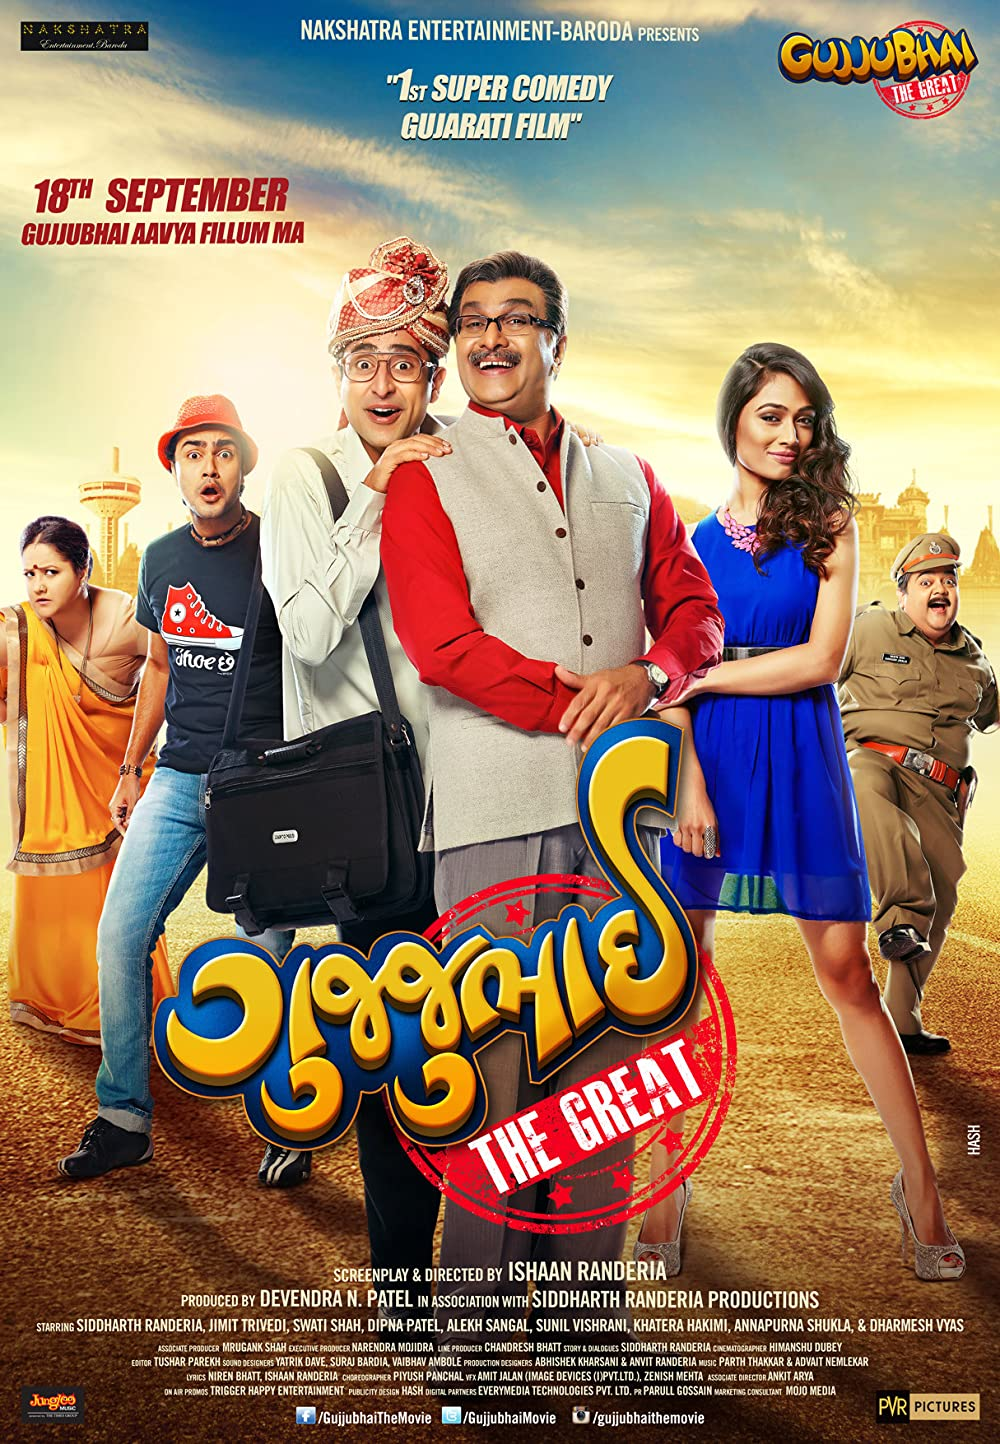 Gujjubhai The Great 2015 Gujarati Full Movie 1080p HDRip 1.9GB ESub Download